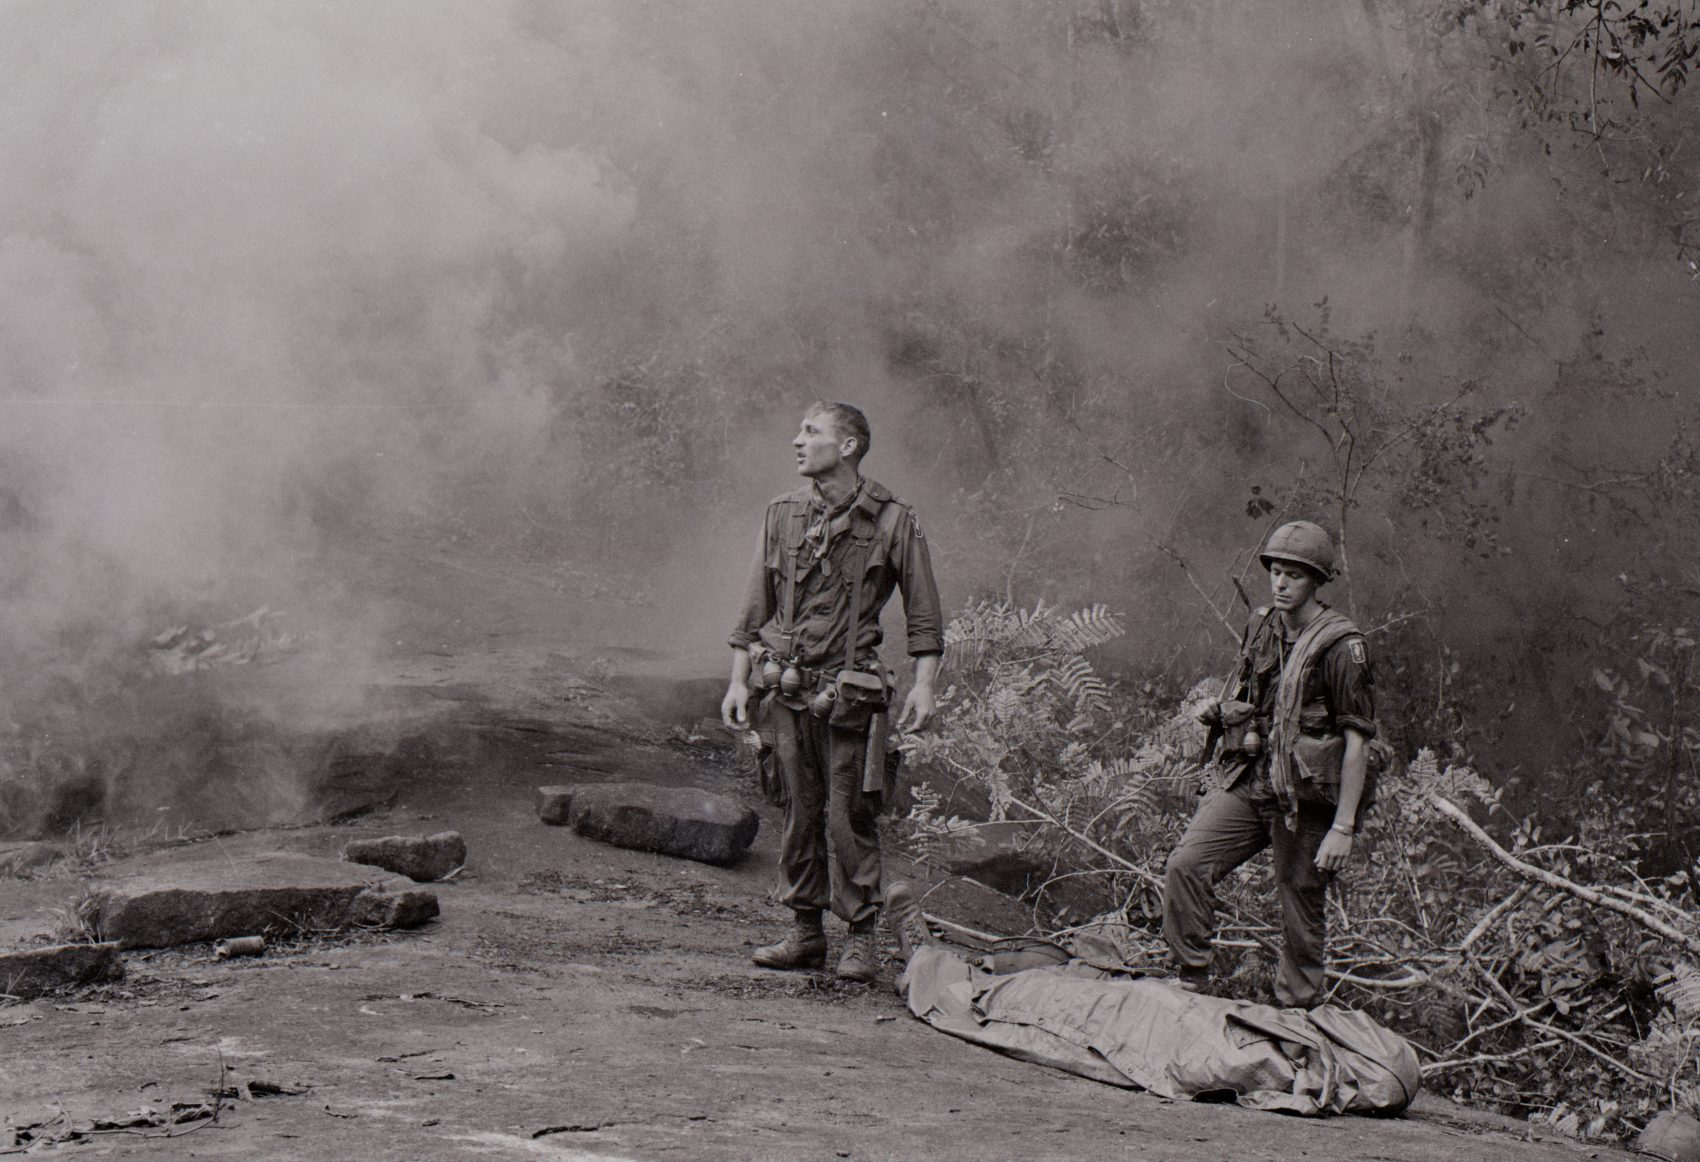 Long Khanh Province, Republic of Vietnam: SP4 R. Richter, 4th Battalion, 503rd Infantry, 173rd Airborne Brigade, lifts his battle weary eyes to the heavens, as if to ask why? Sergeant Daniel E. Spencer stares down at their fallen comrade. The day's battle ended, the silently await the helicopter which will evacuate their comrade from the jungle covered hills. (Courtesy of National Archives and Records Administration)